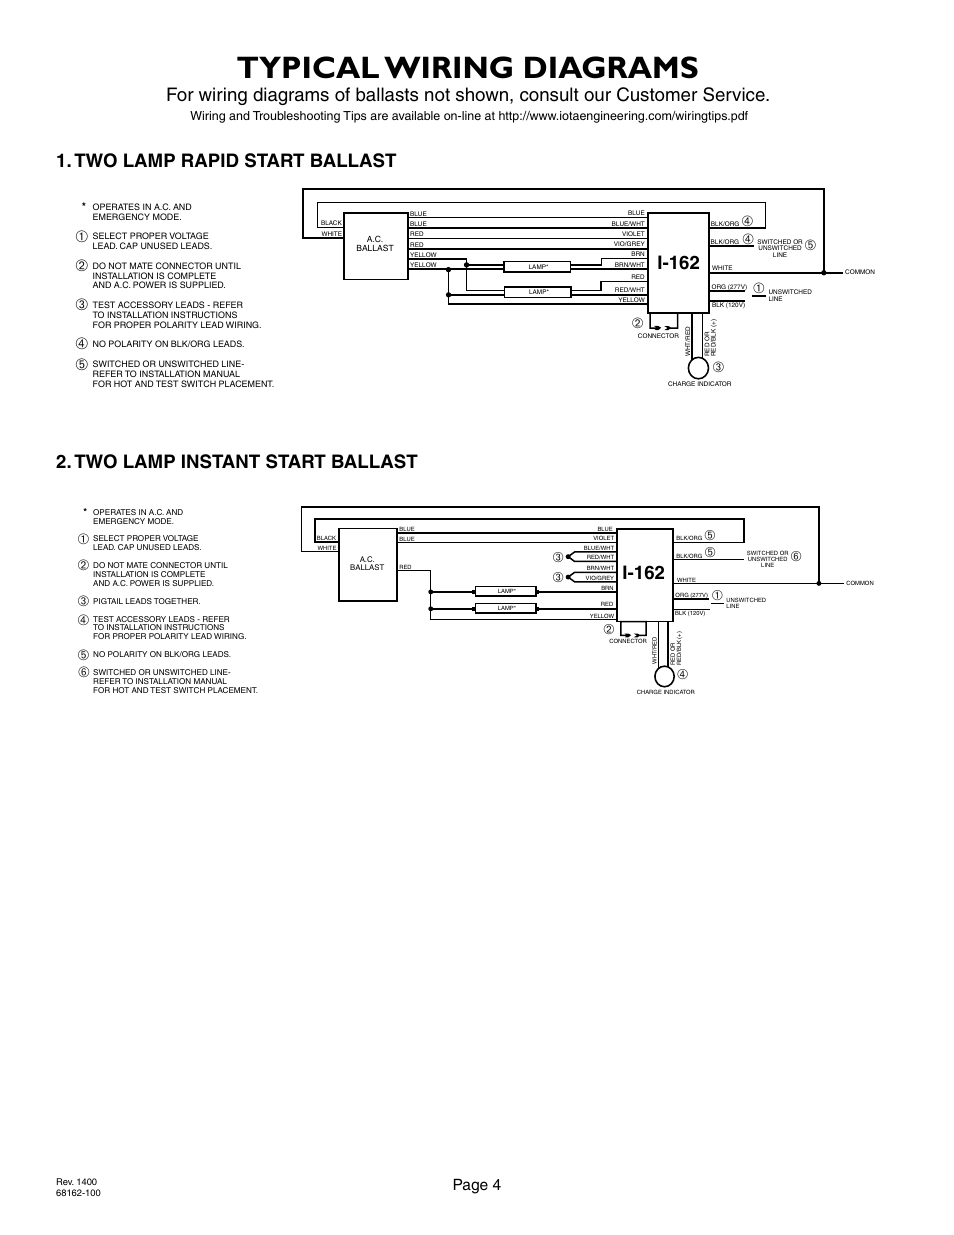 Ballast Wiring With Two Hots Trusted Schematics Diagram T12 2 Typical Diagrams Page 4 Iota I 162 User Manual Ge